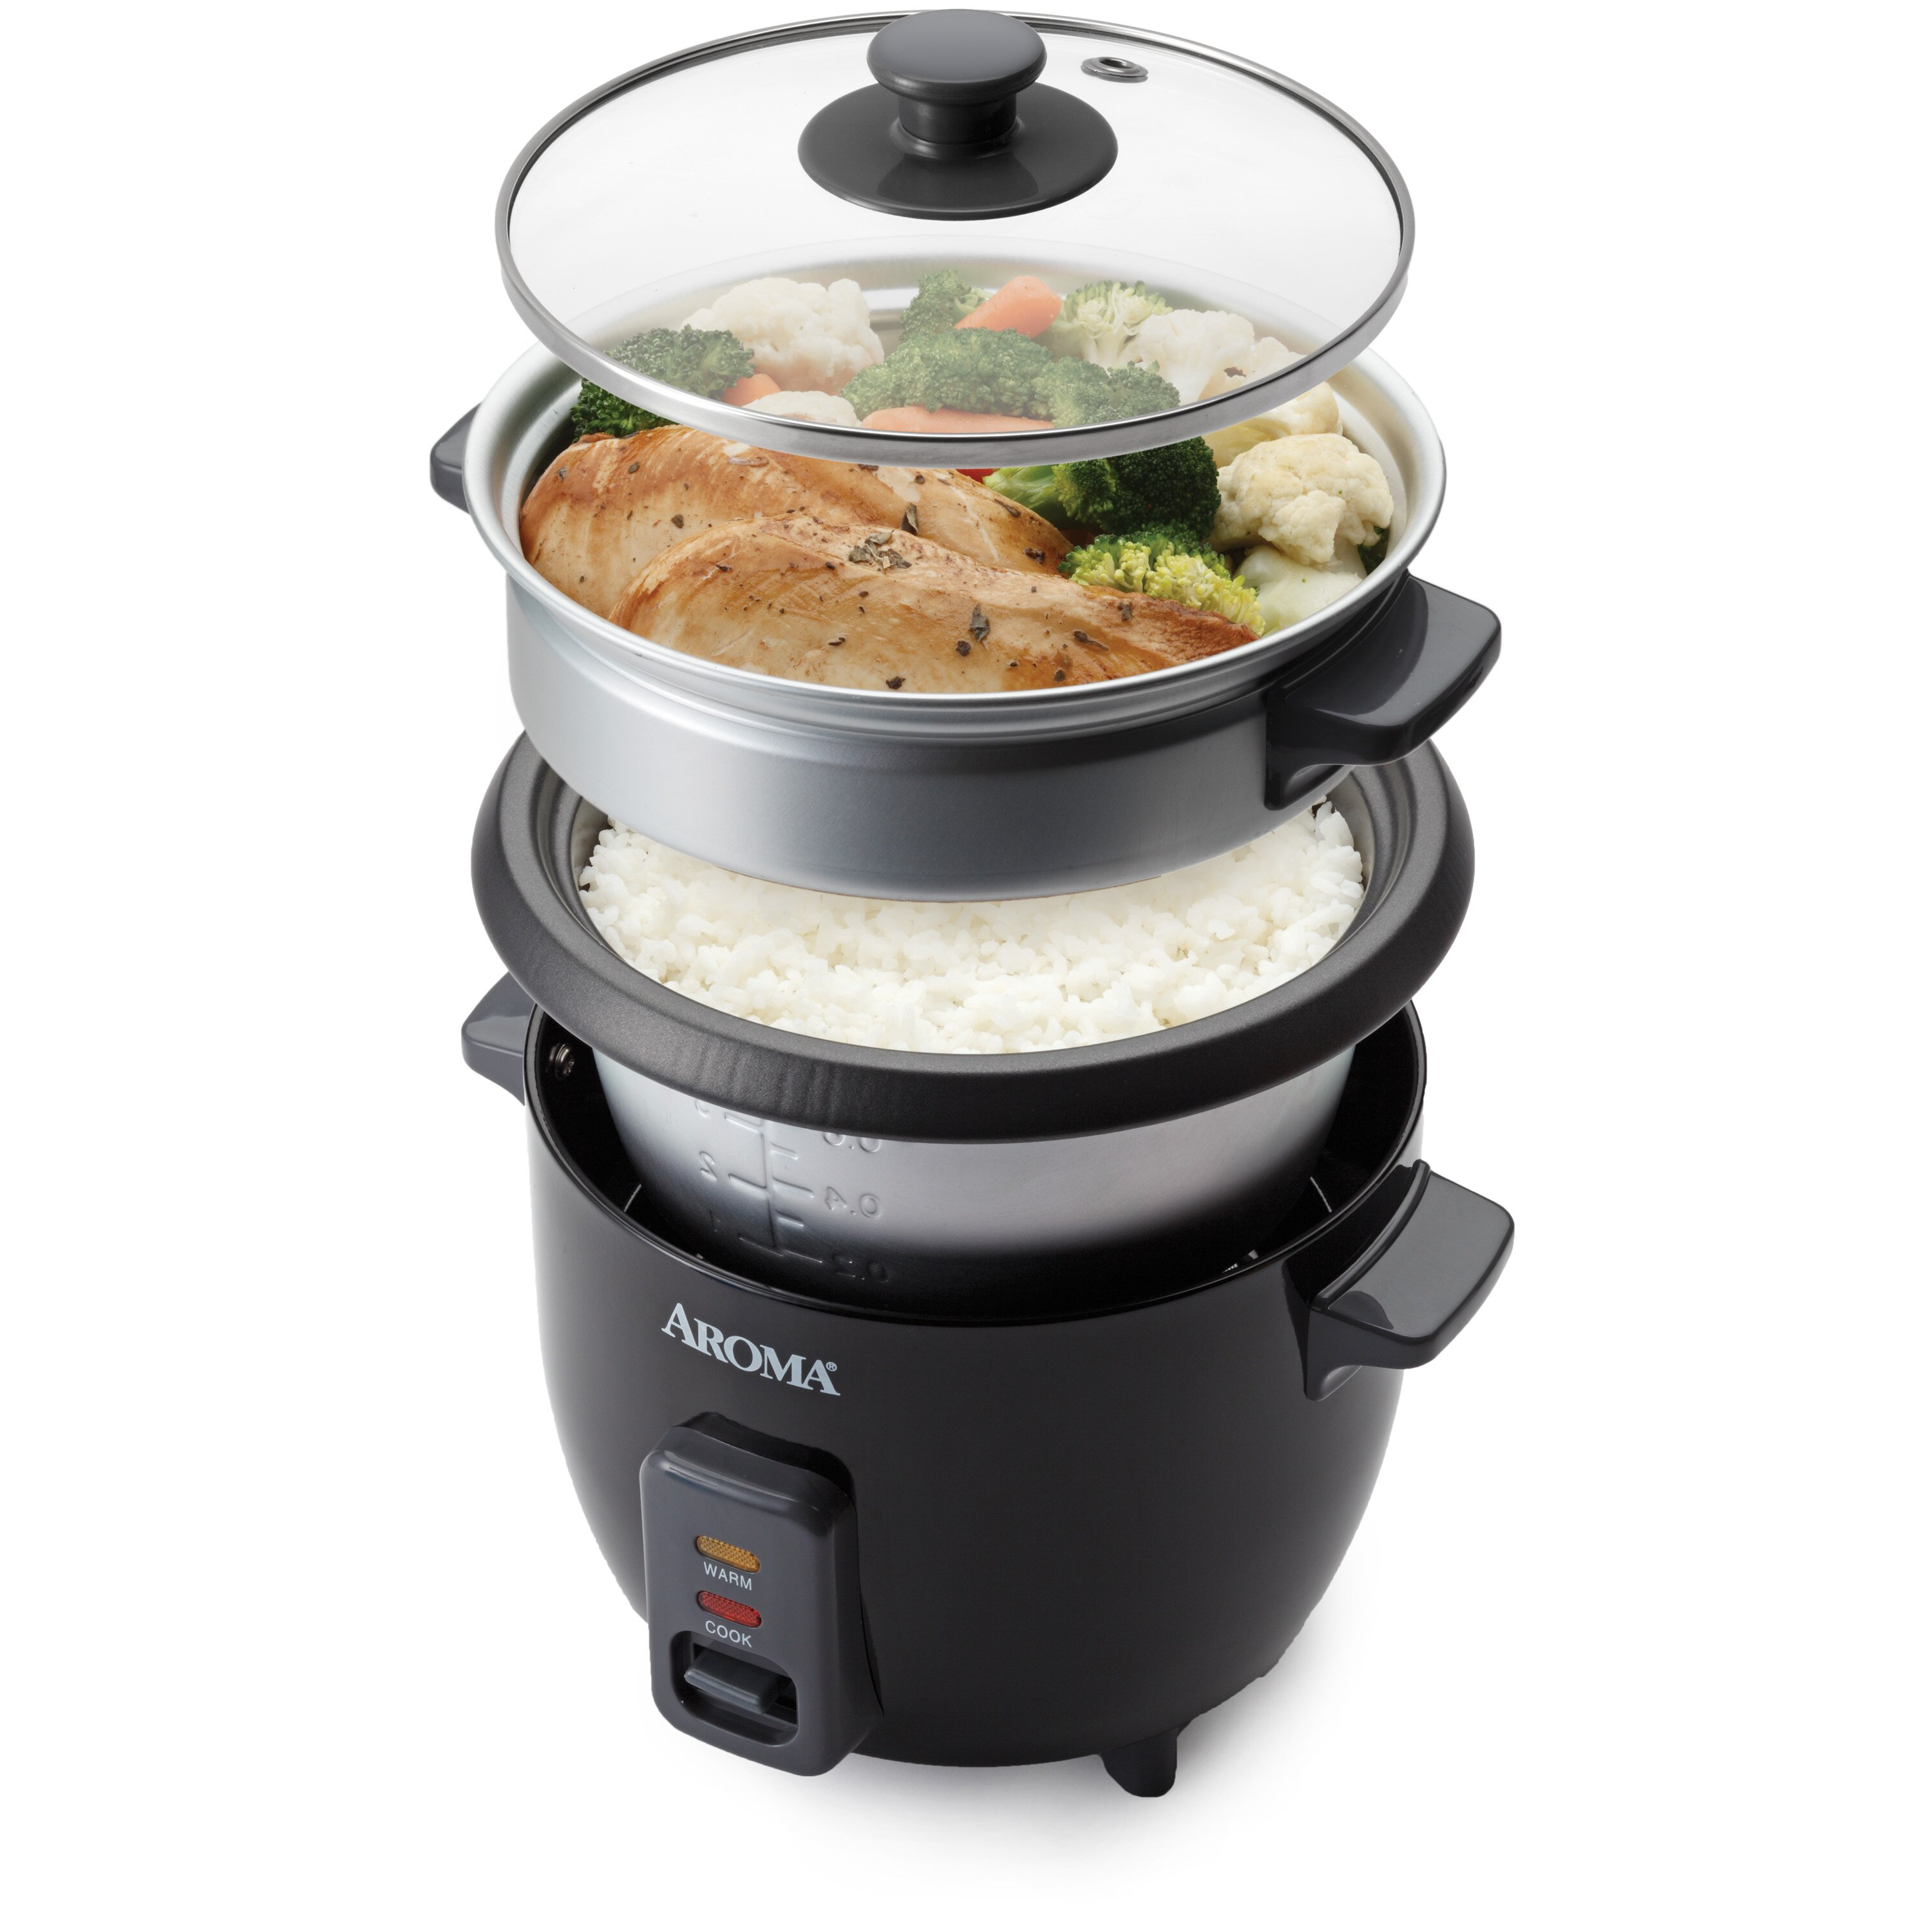 Aroma 6-Cup Rice Cooker & Reviews | Wayfair